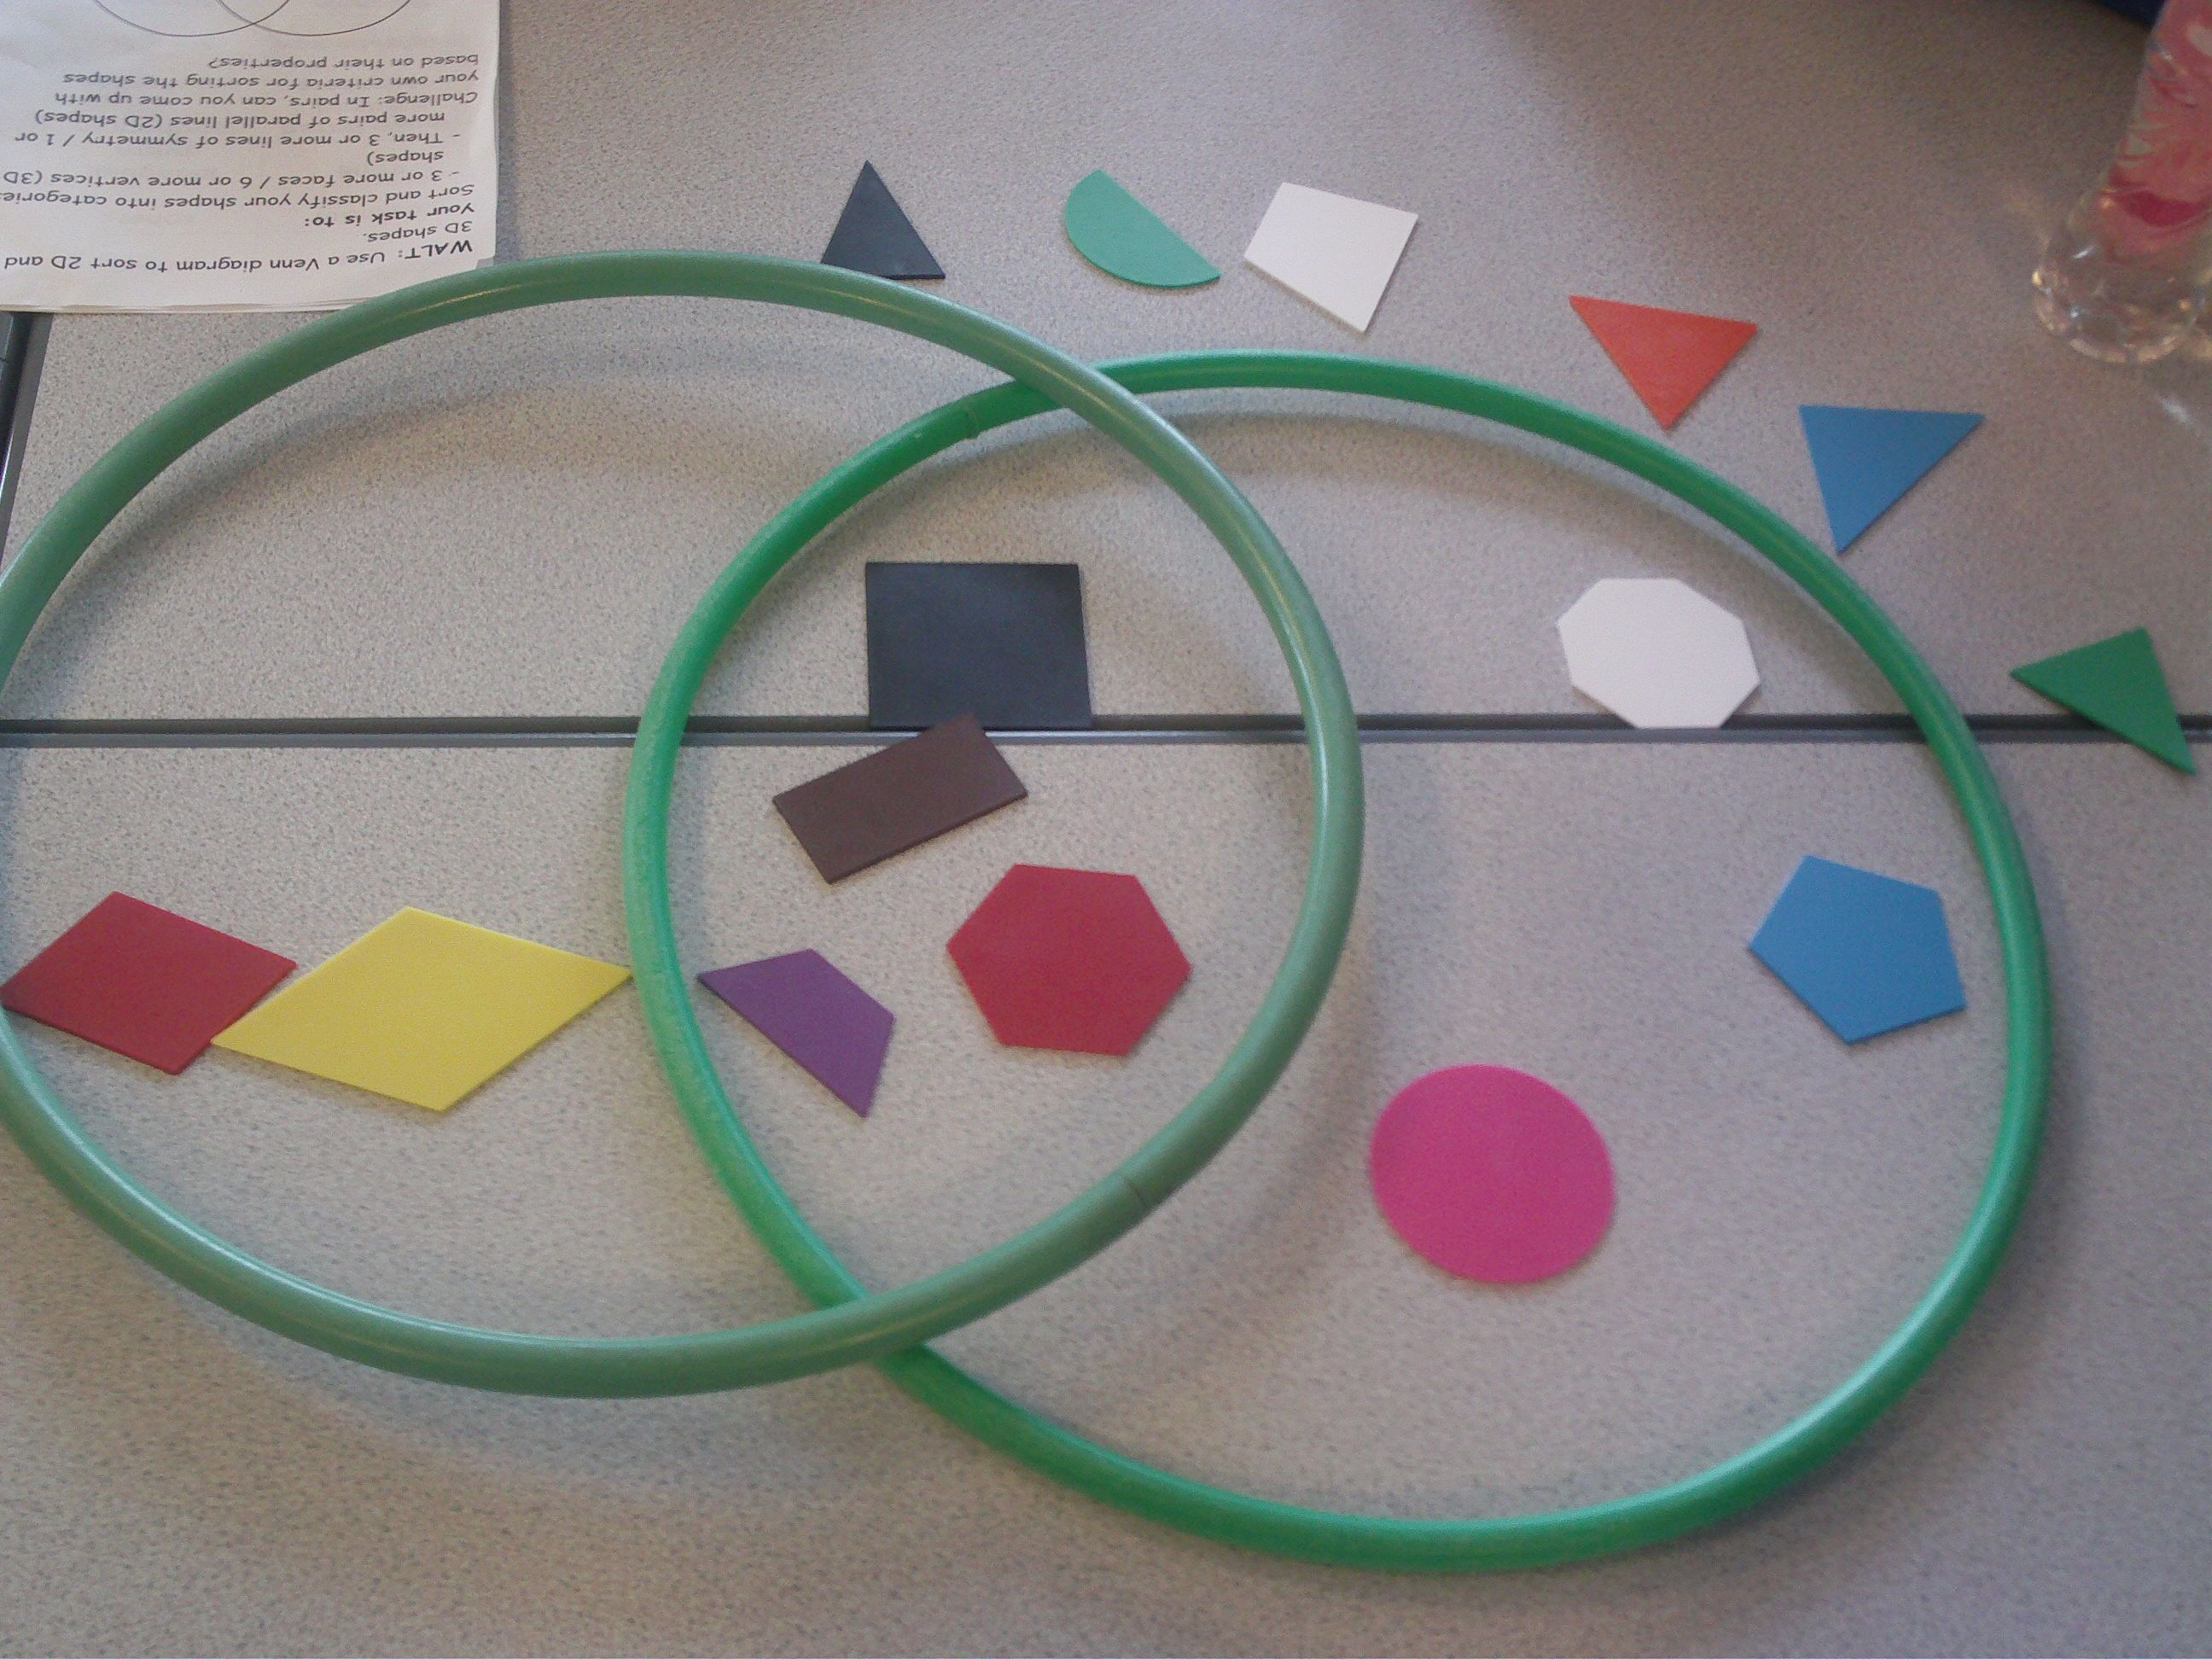 2d or 3d shape sorting with venn diagrams according to 2 different 2d or 3d shape sorting with venn diagrams according to 2 different properties which can be differentiated for ability groups as part of this topic ccuart Choice Image